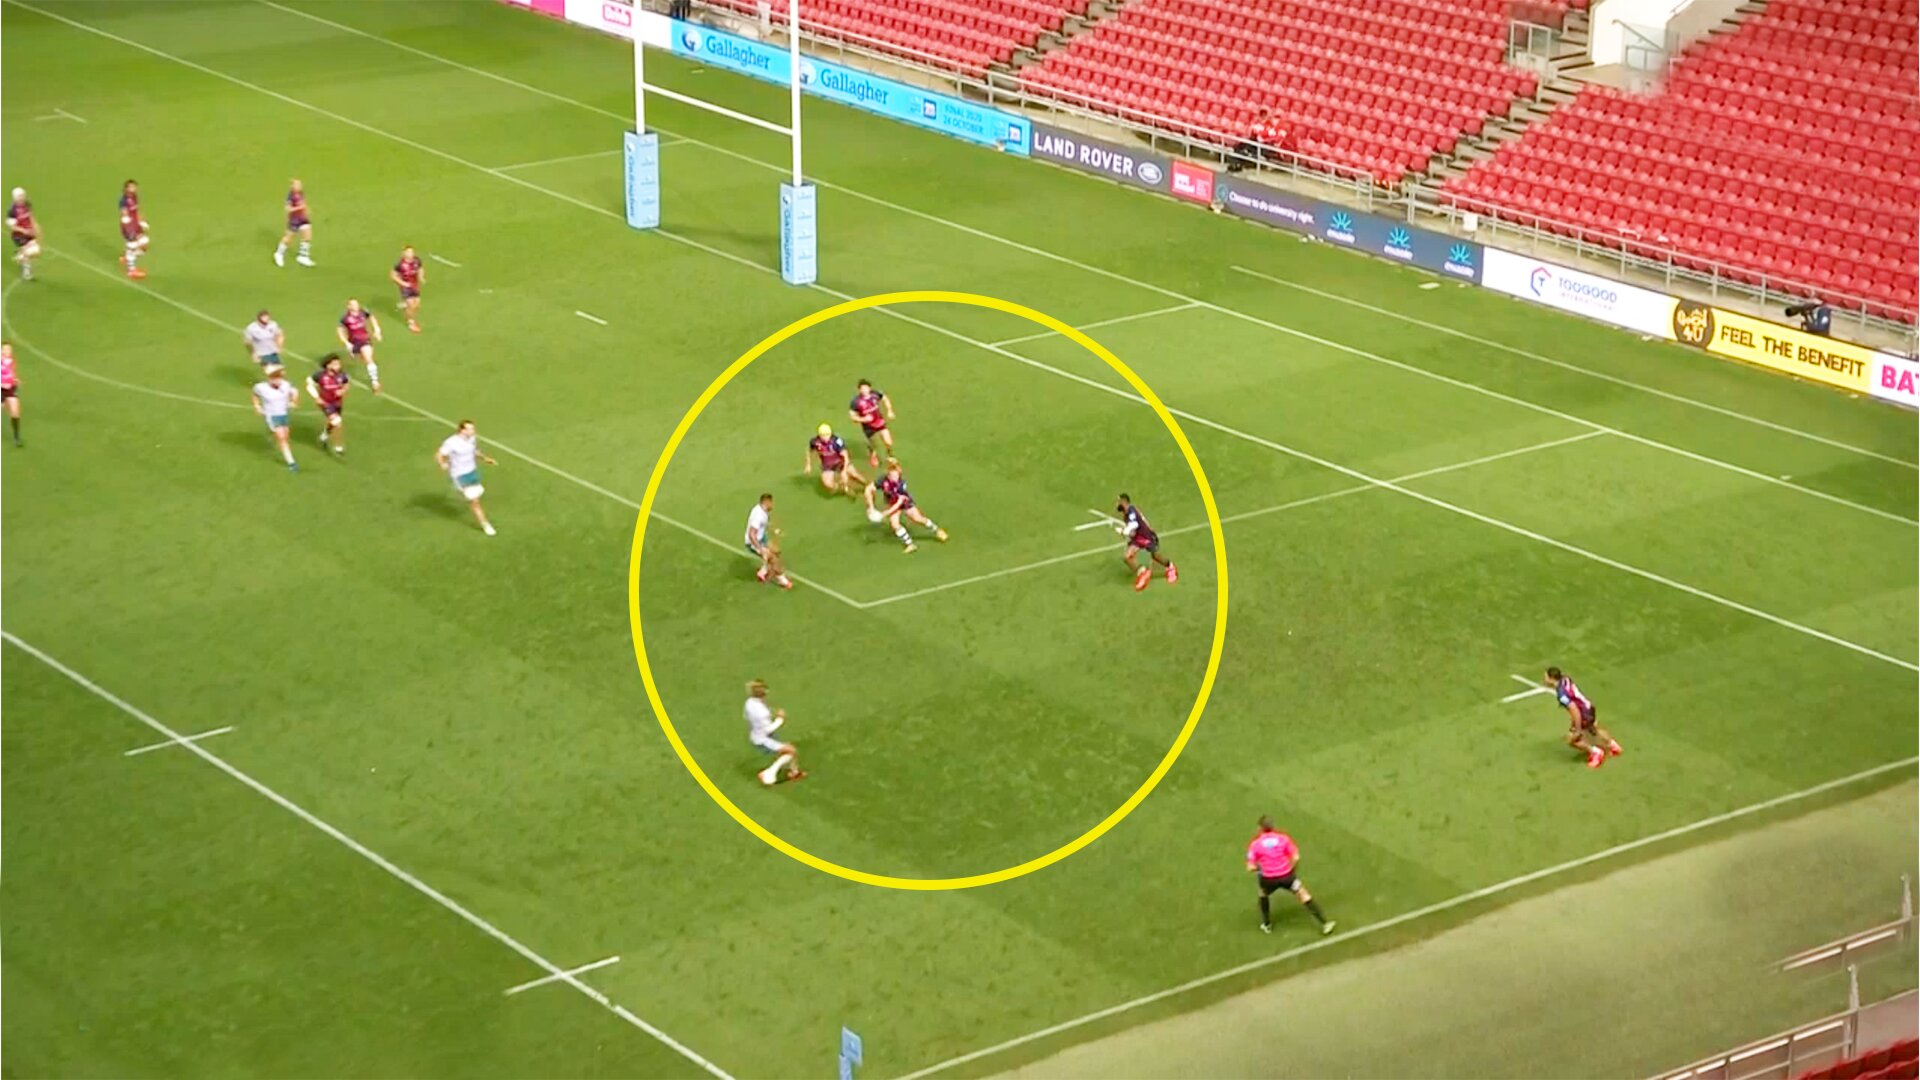 WATCH: The sensational Bristol score that everyone's dubbing 'the try of the season'